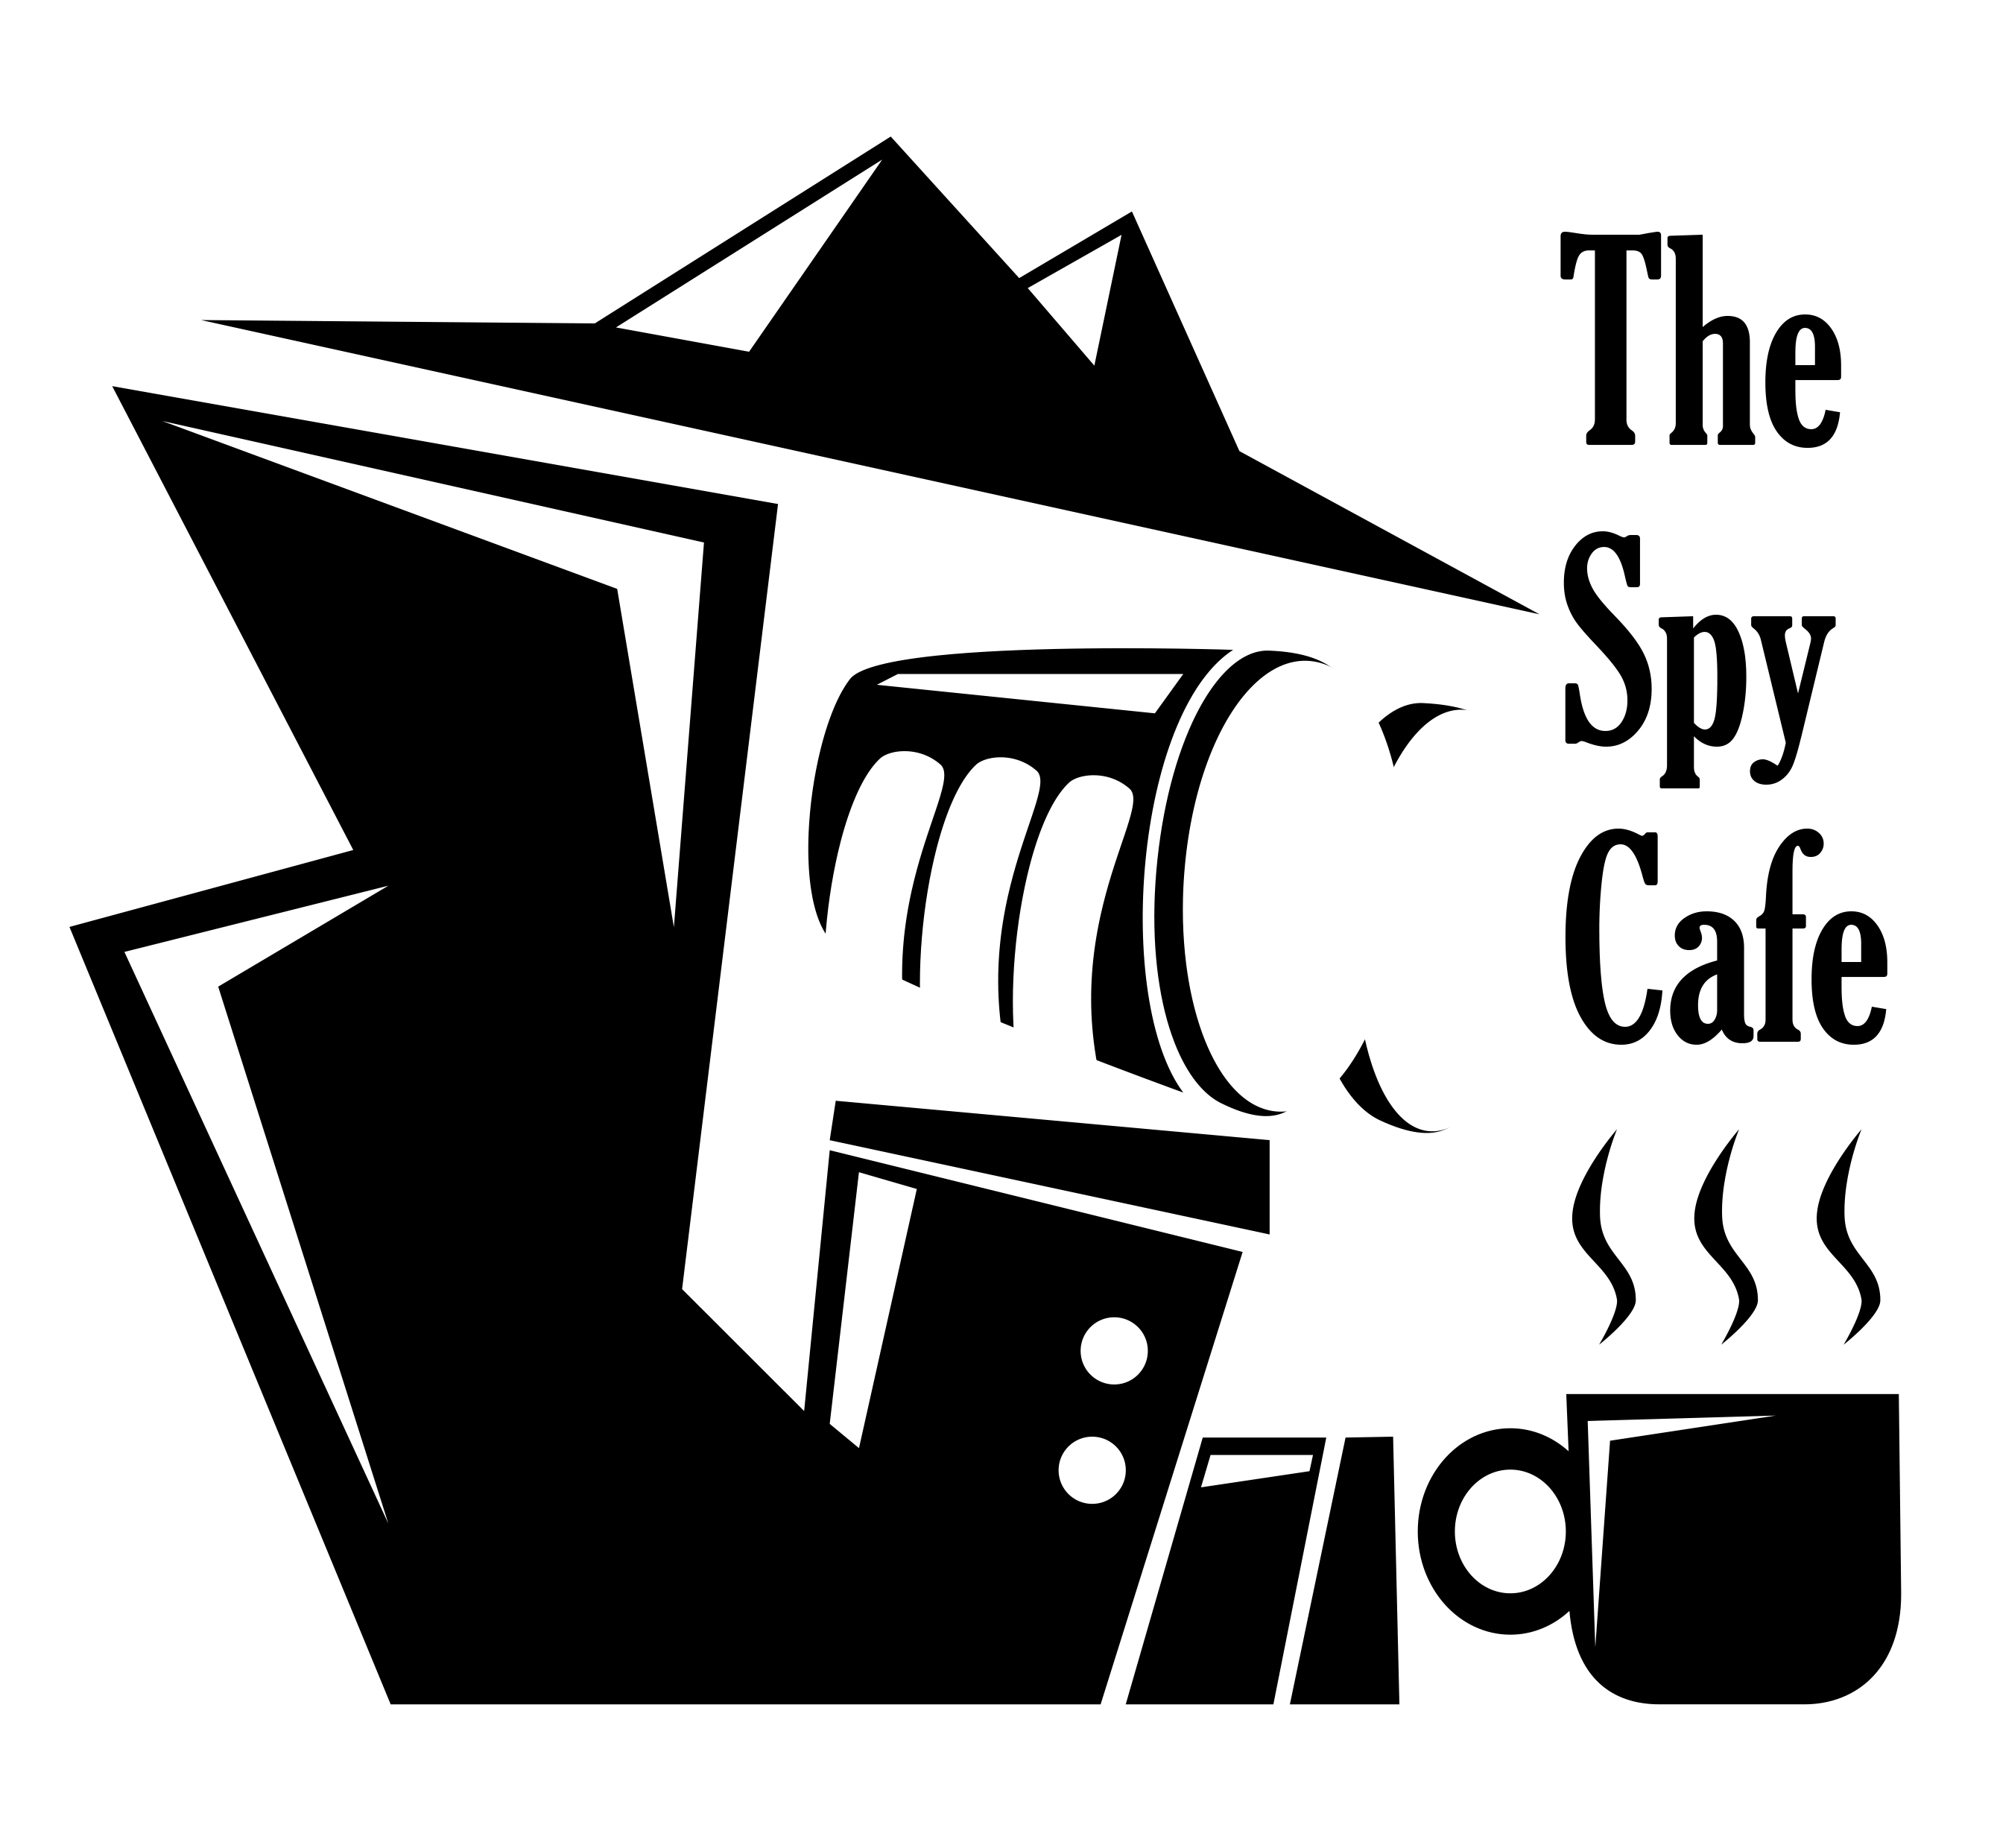 The spy cafe